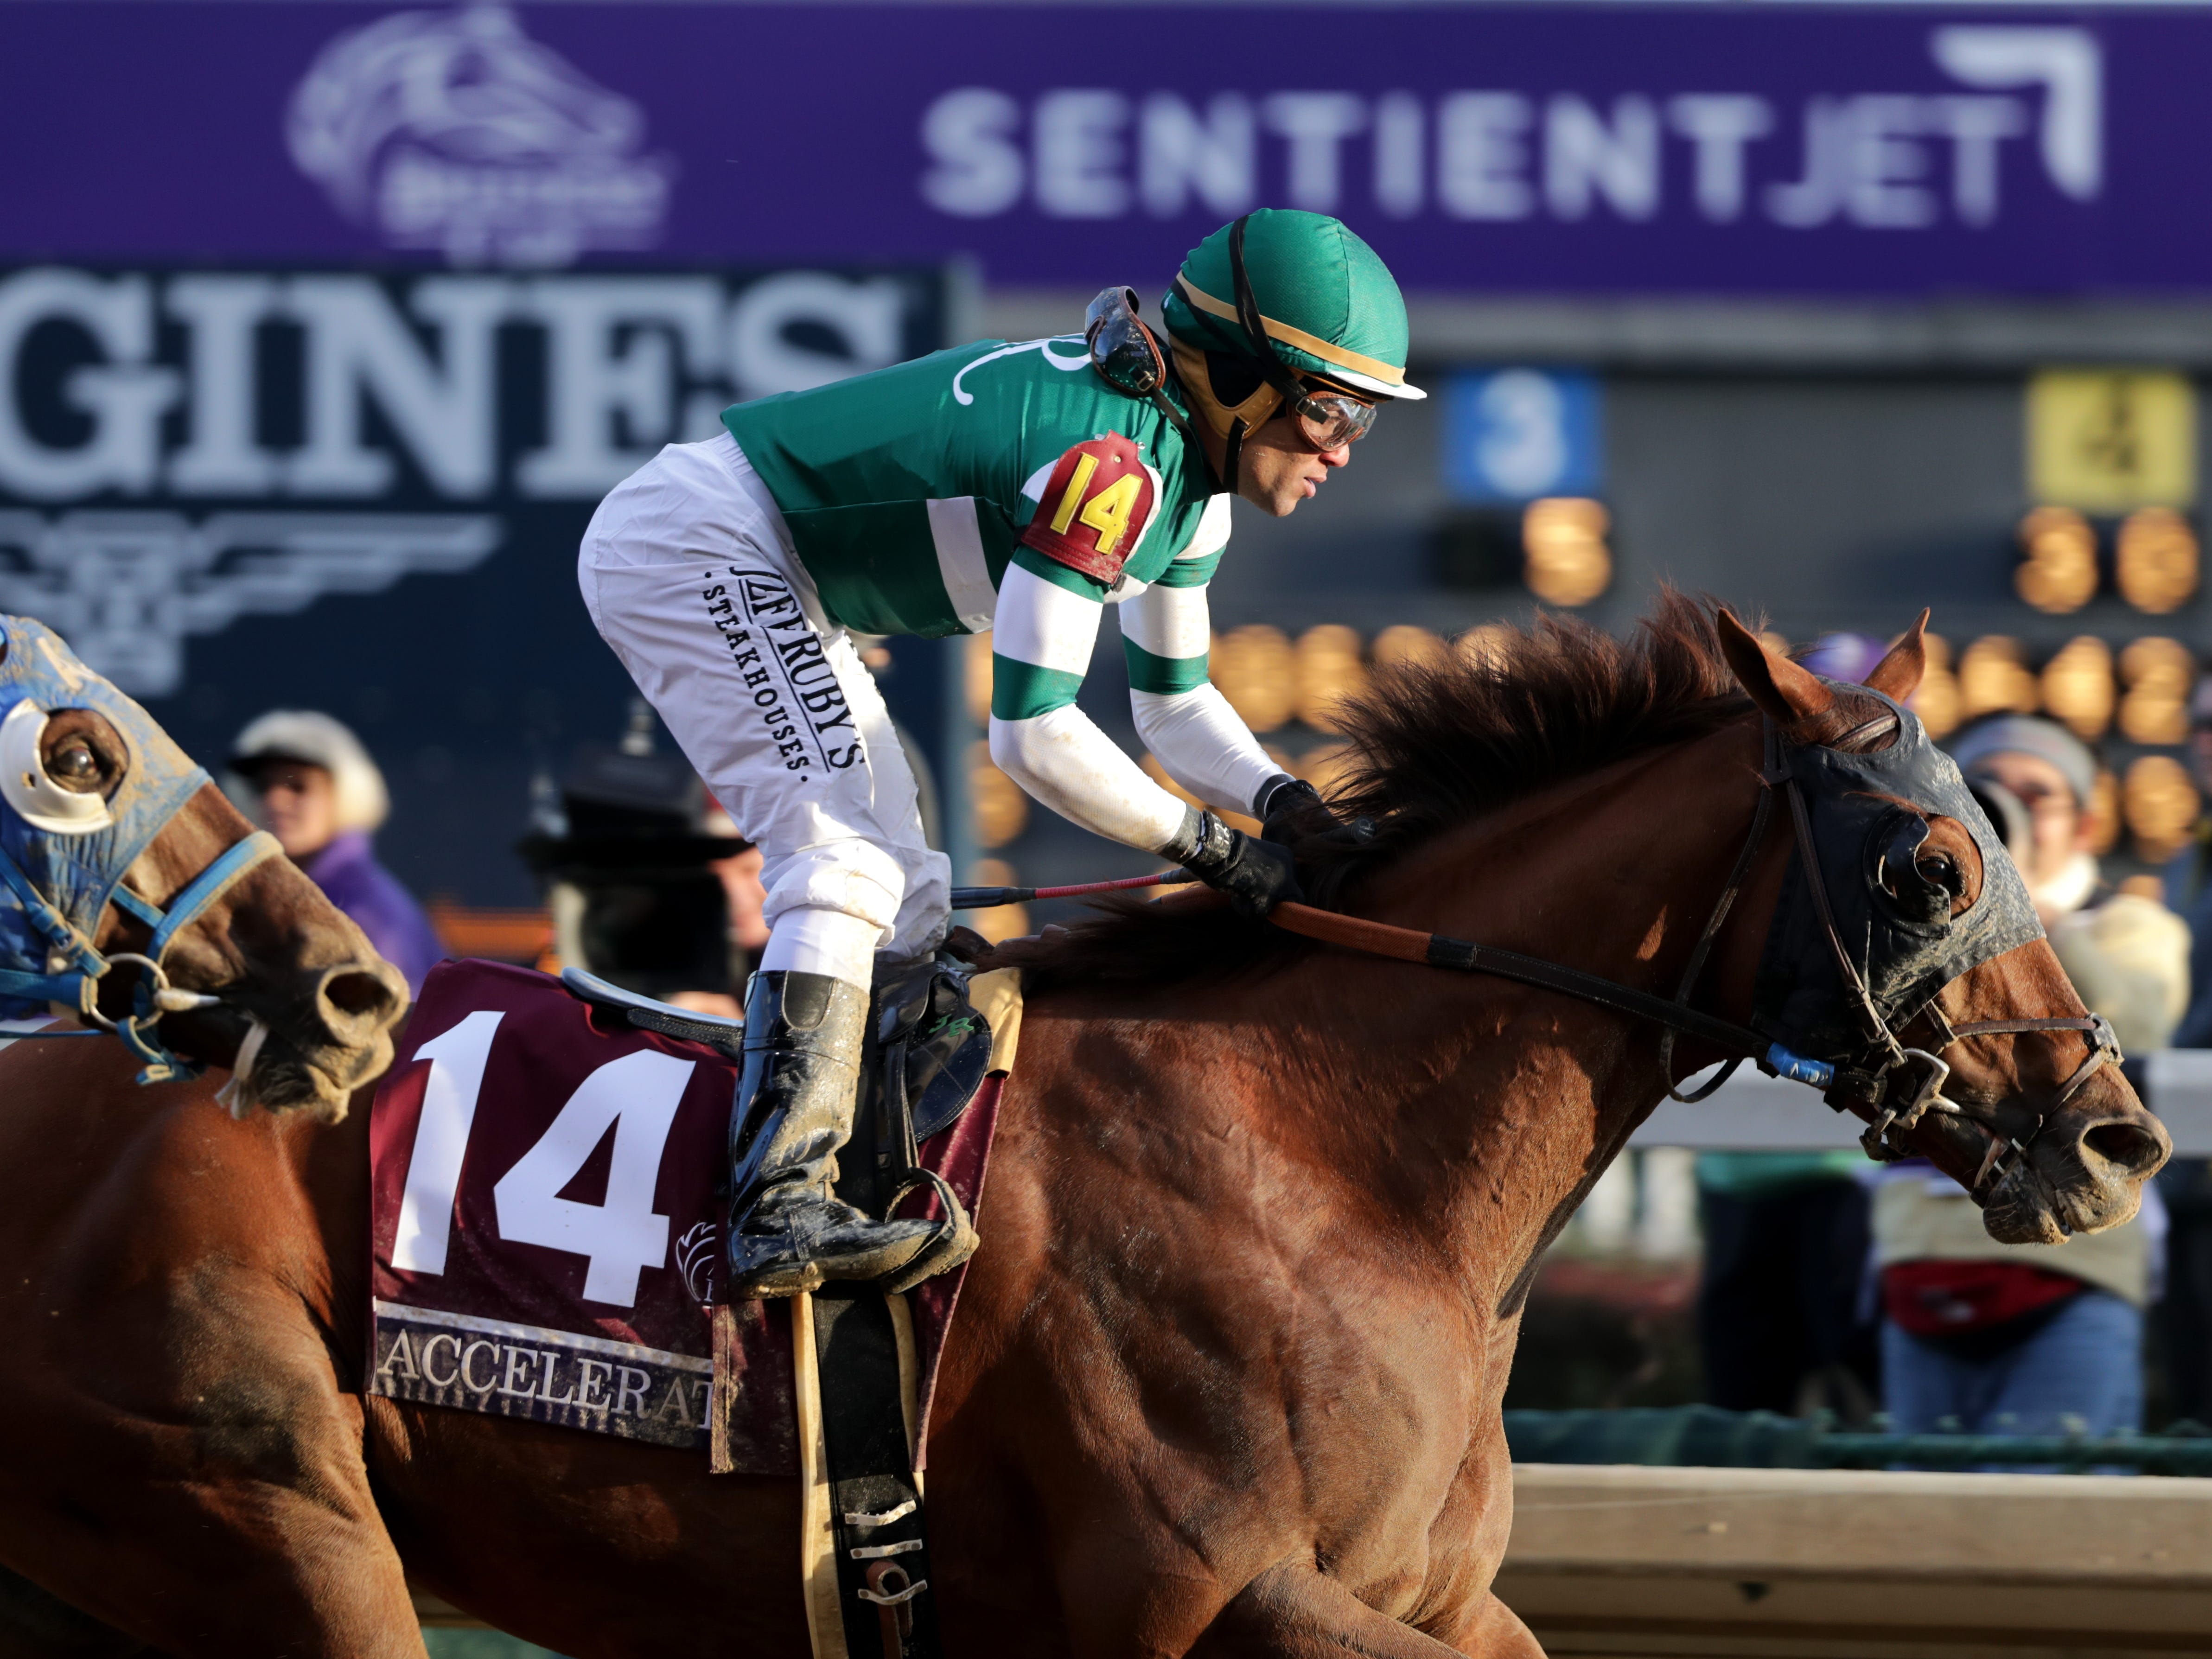 Accelerate, with jockey Joel Rosario aboard, wins the Breeders' Cup Classic at Churchill Downs. Nov. 3, 2018.